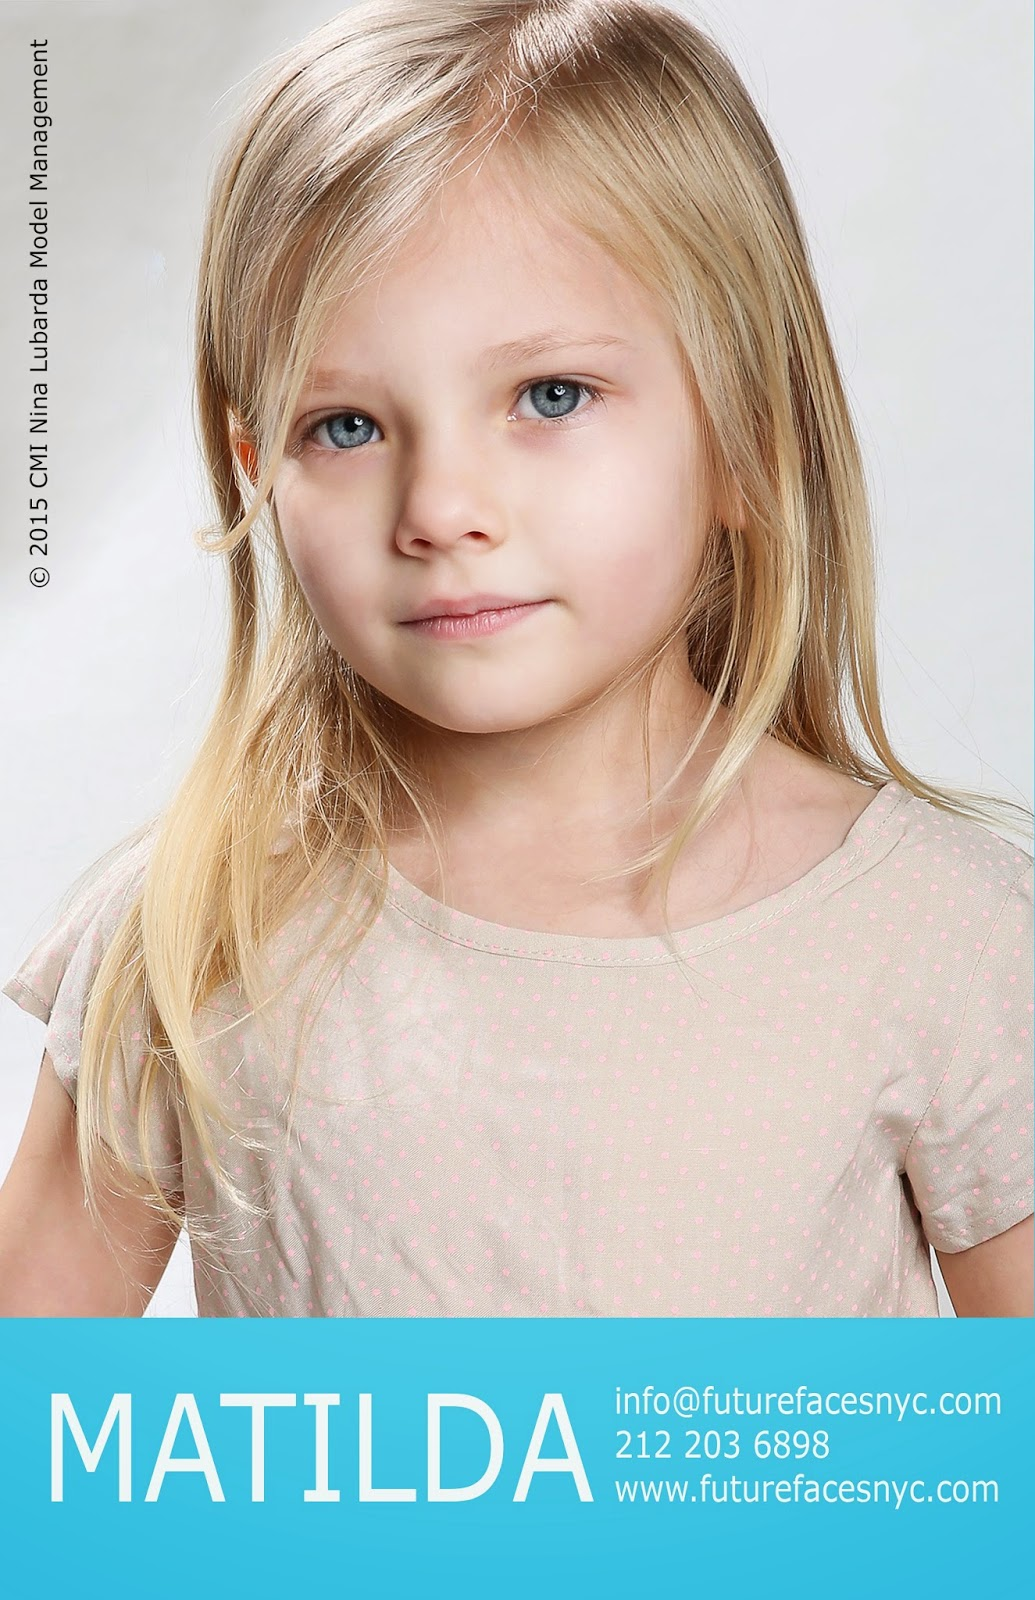 Future faces nyc future faces nyc top children modeling for Modeling agencies in nyc